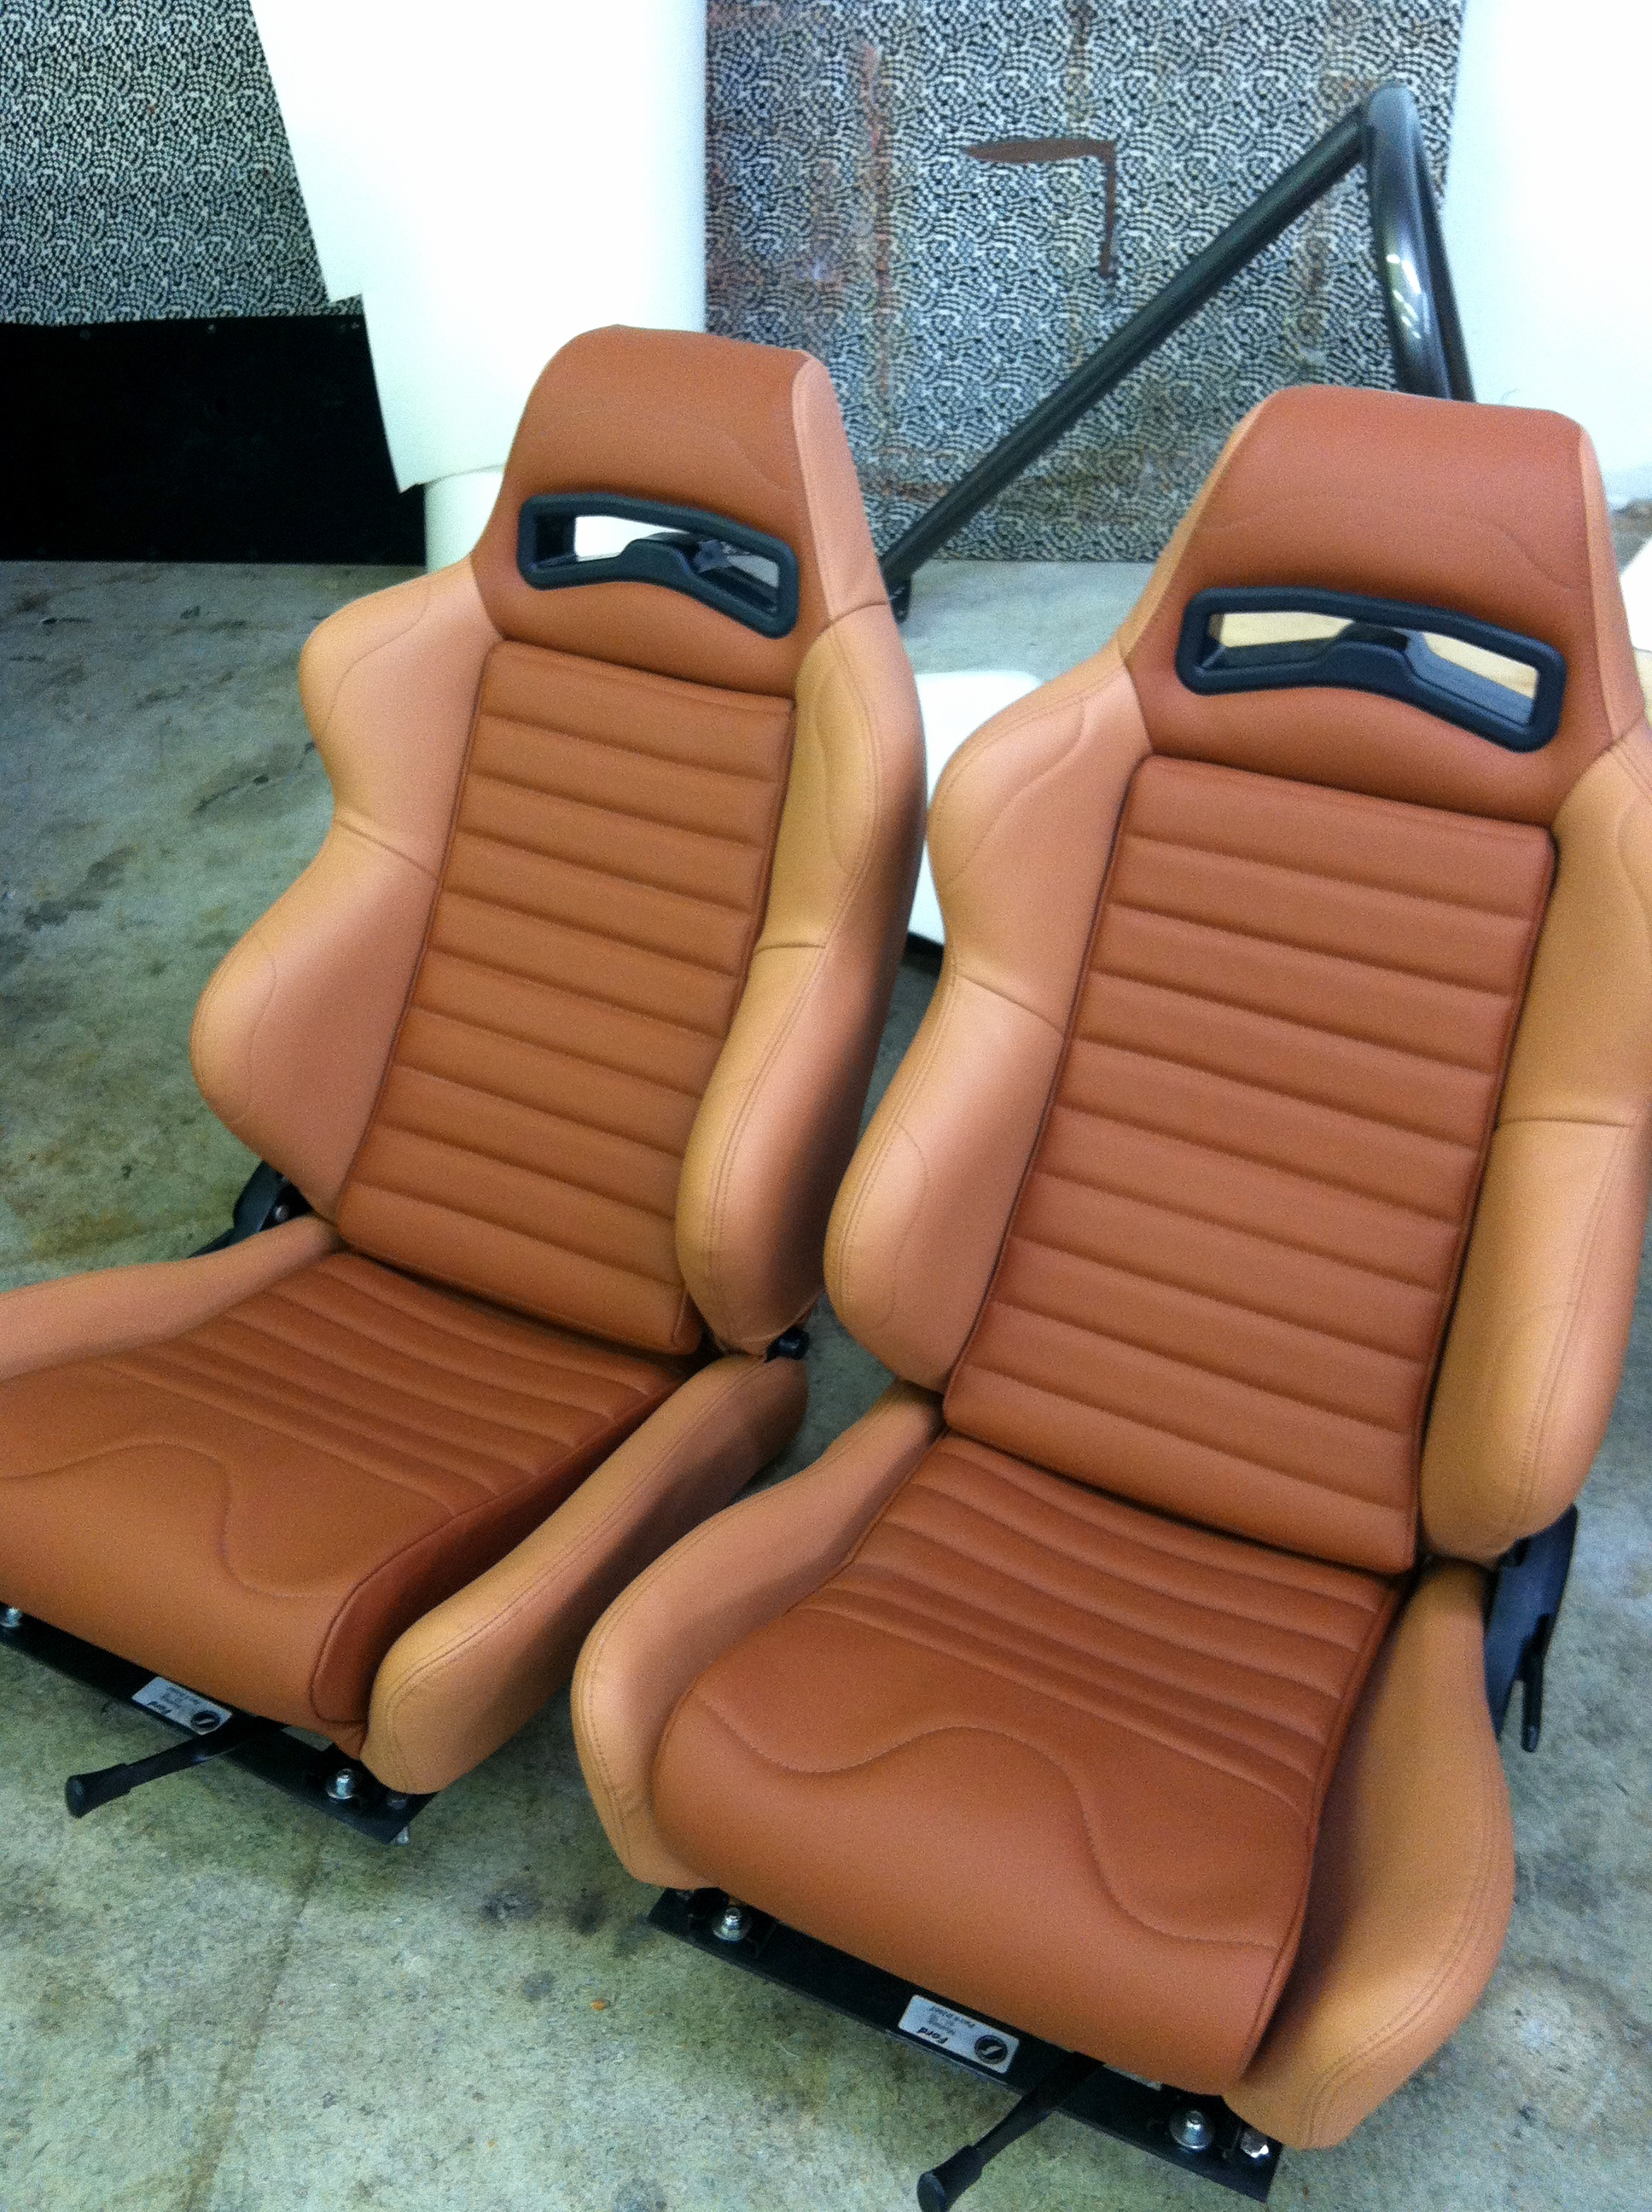 NW Crafted tan on tan leather racing seats.